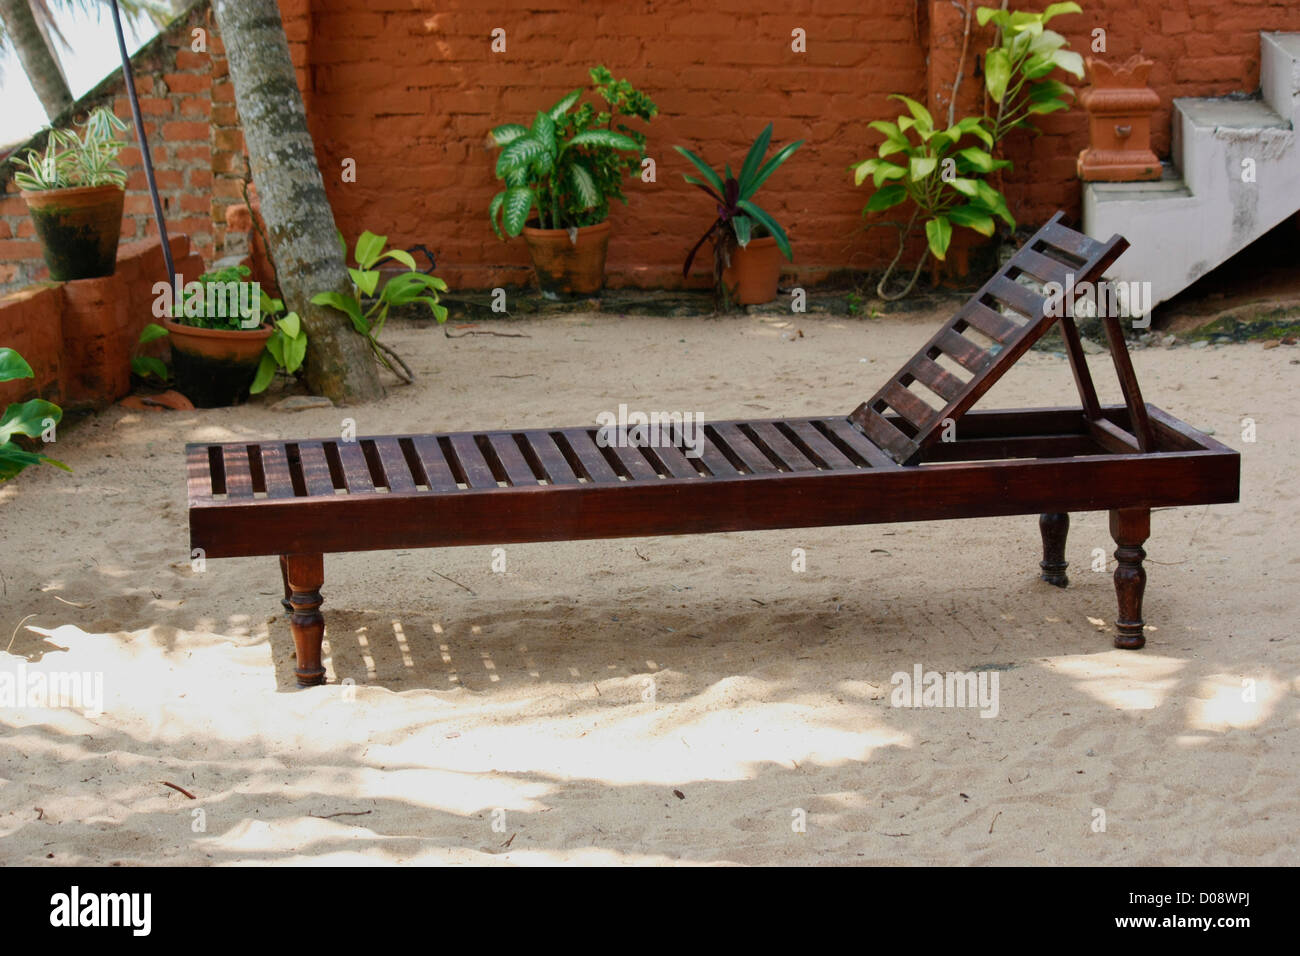 Bench on a tourist resort for resting and taking sunbath - Stock Image